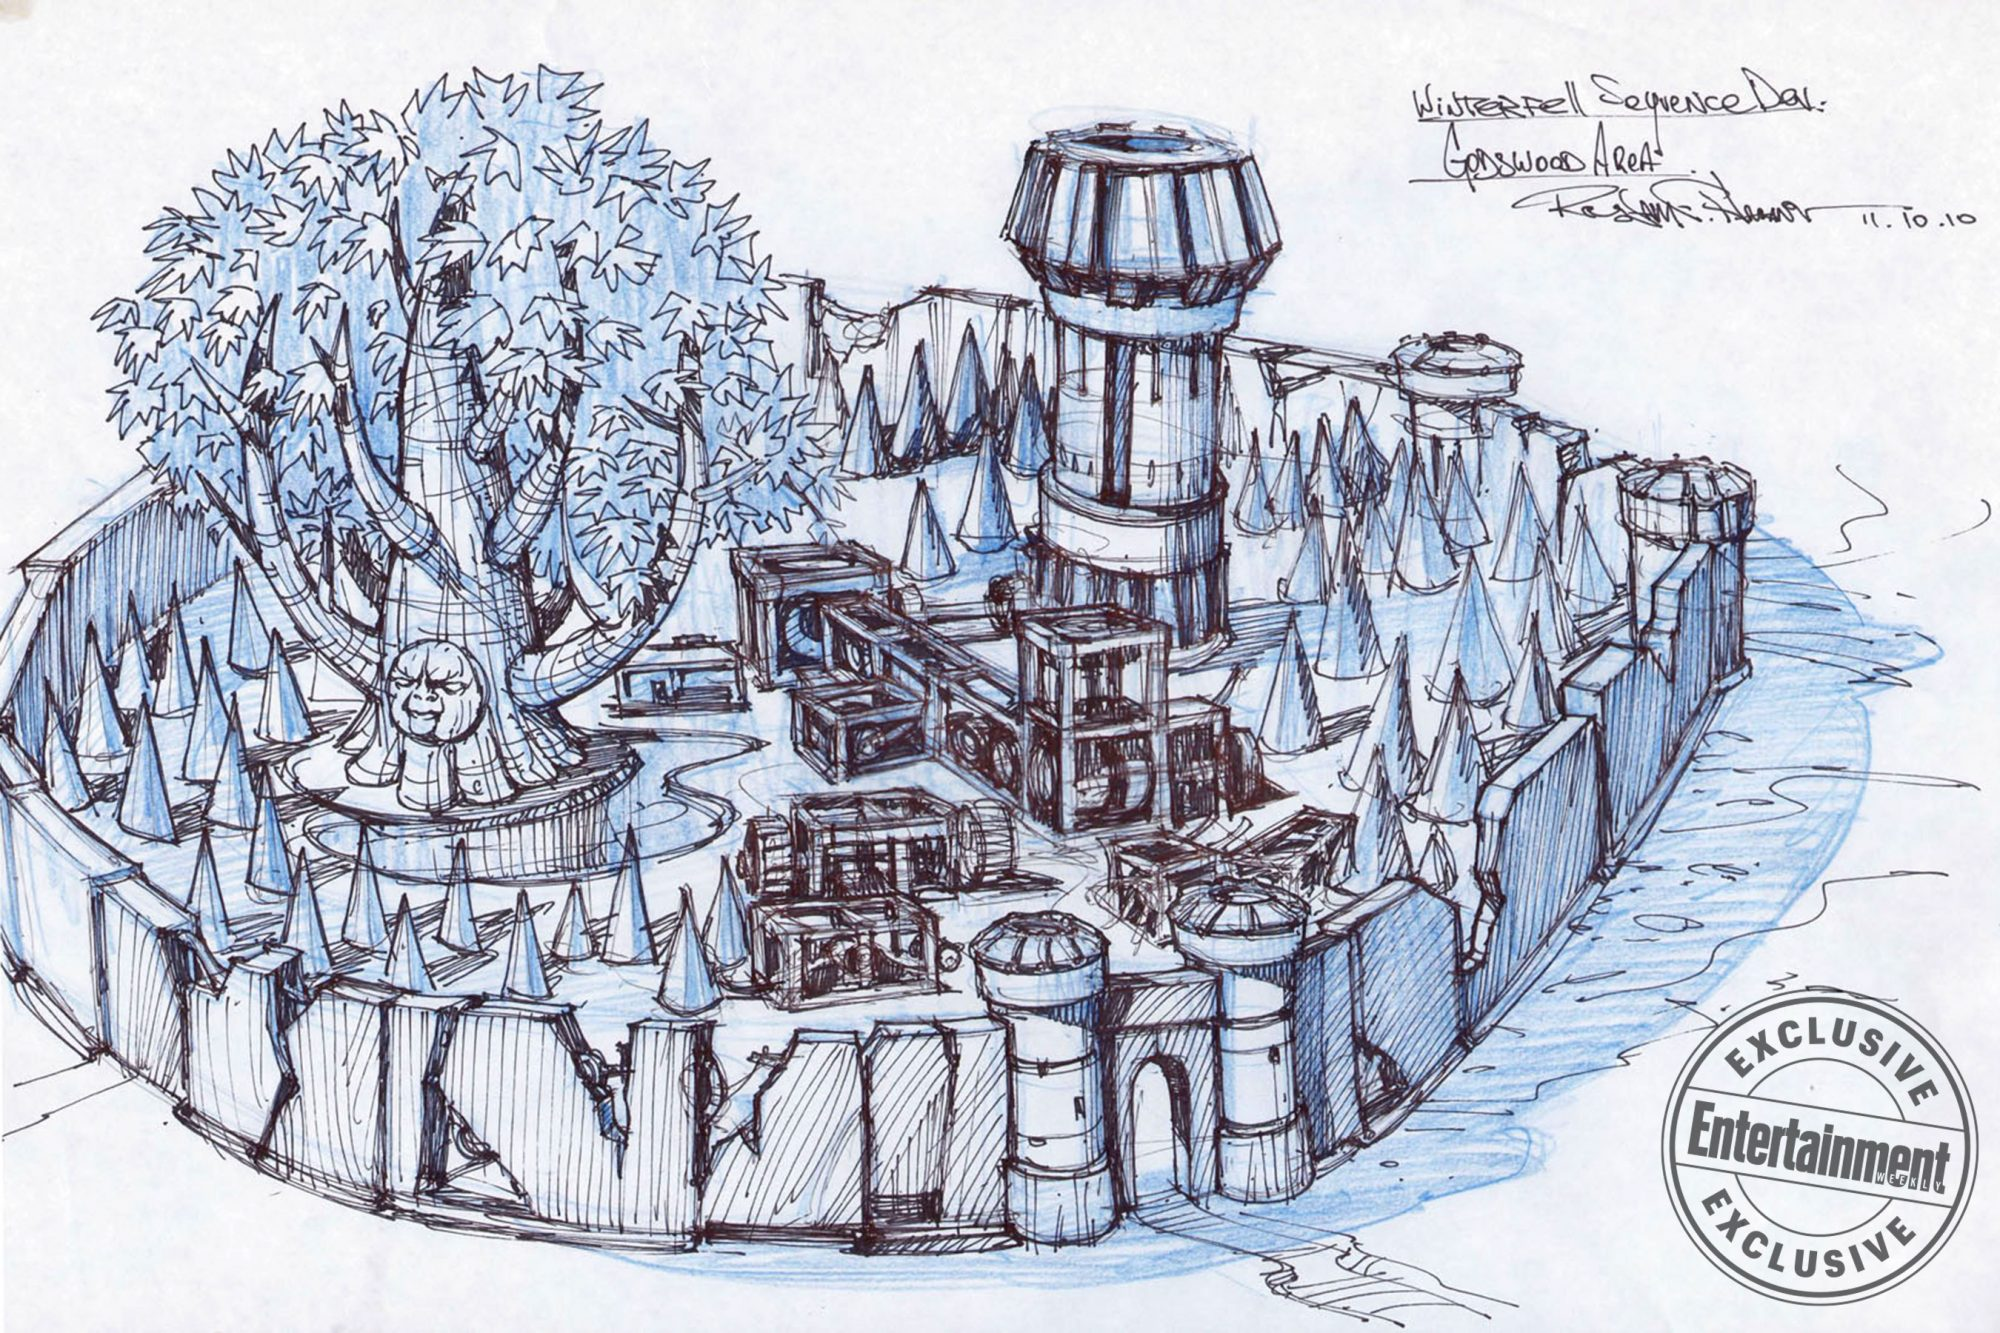 Game of ThronesTitle SequenceWinterfell/Godswood Concept Art